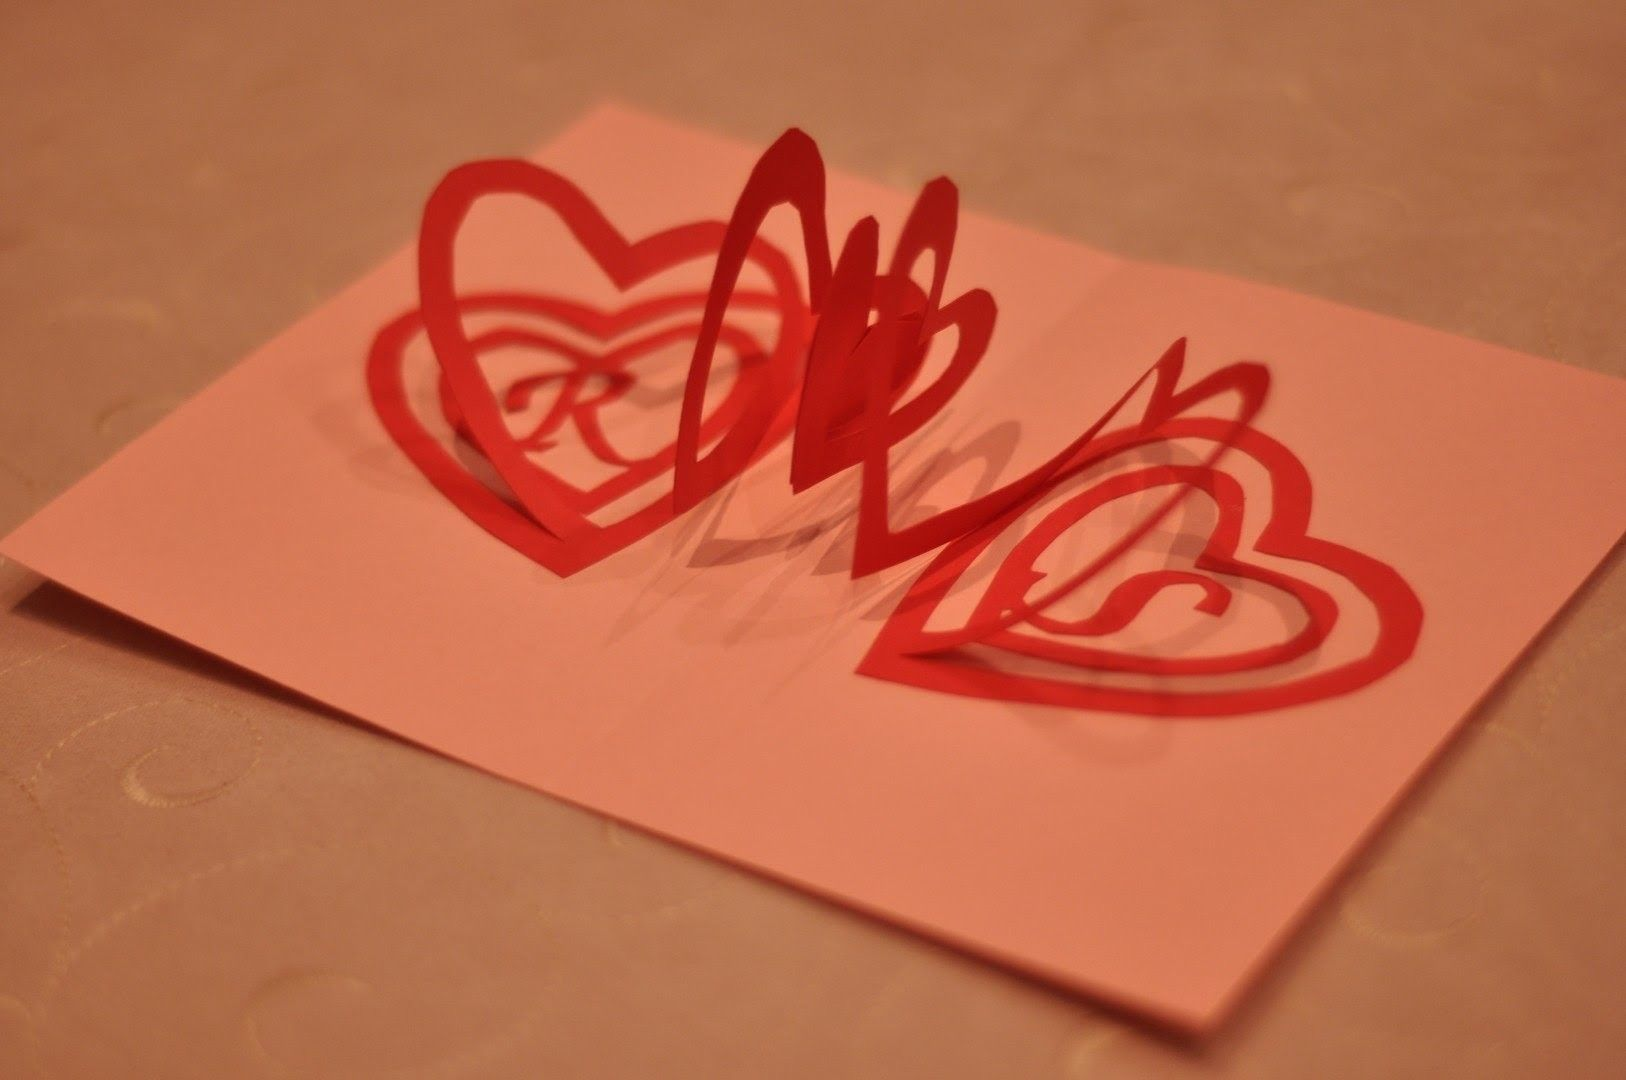 How To Make A Valentine S Day Pop Up Card Spiral Heart Heart Pop Up Card Pop Up Valentine Cards Pop Up Card Templates